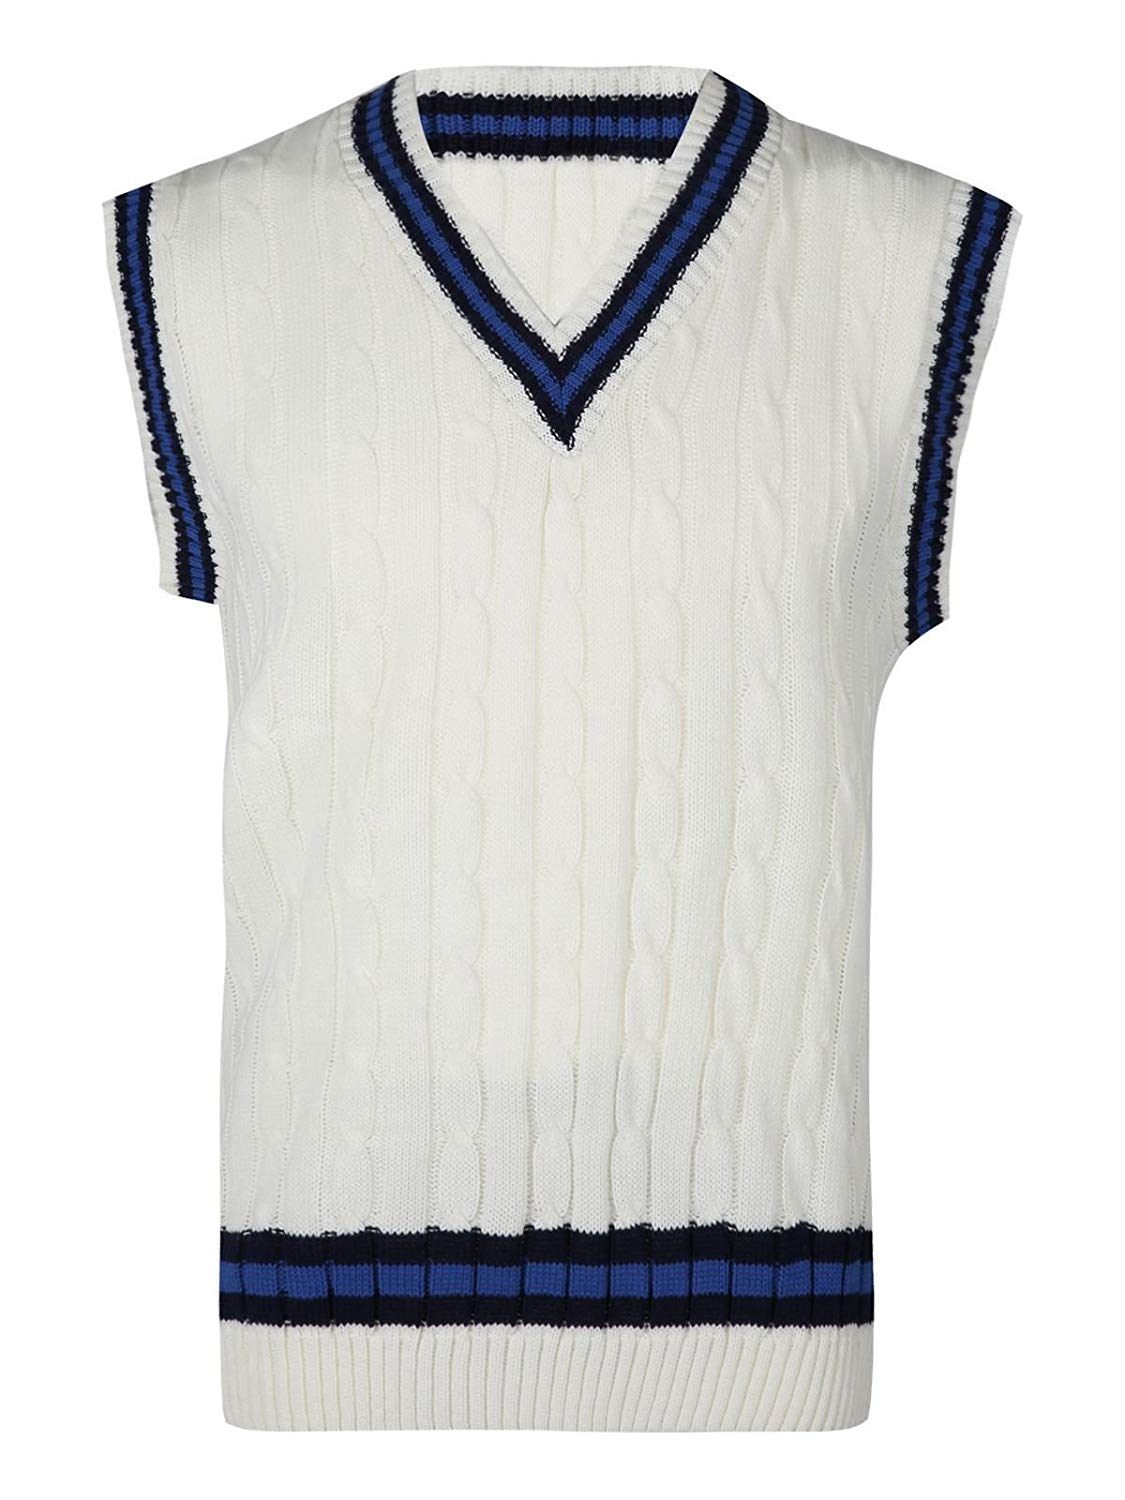 Rimi Hanger Mens Classic Cricket Cable Knitted Tank Top Boys Sleeveless V Neck Ribbed Top S, M, L, XL